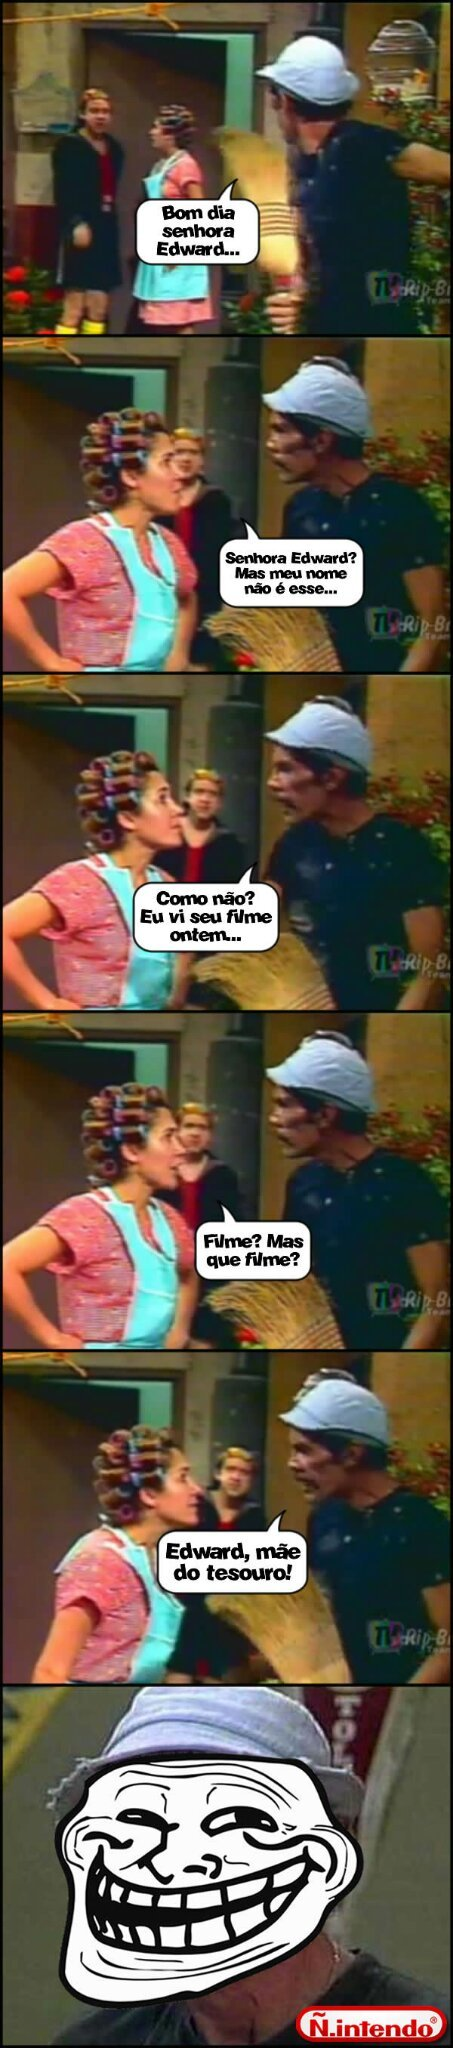 Don Ramon wins - meme